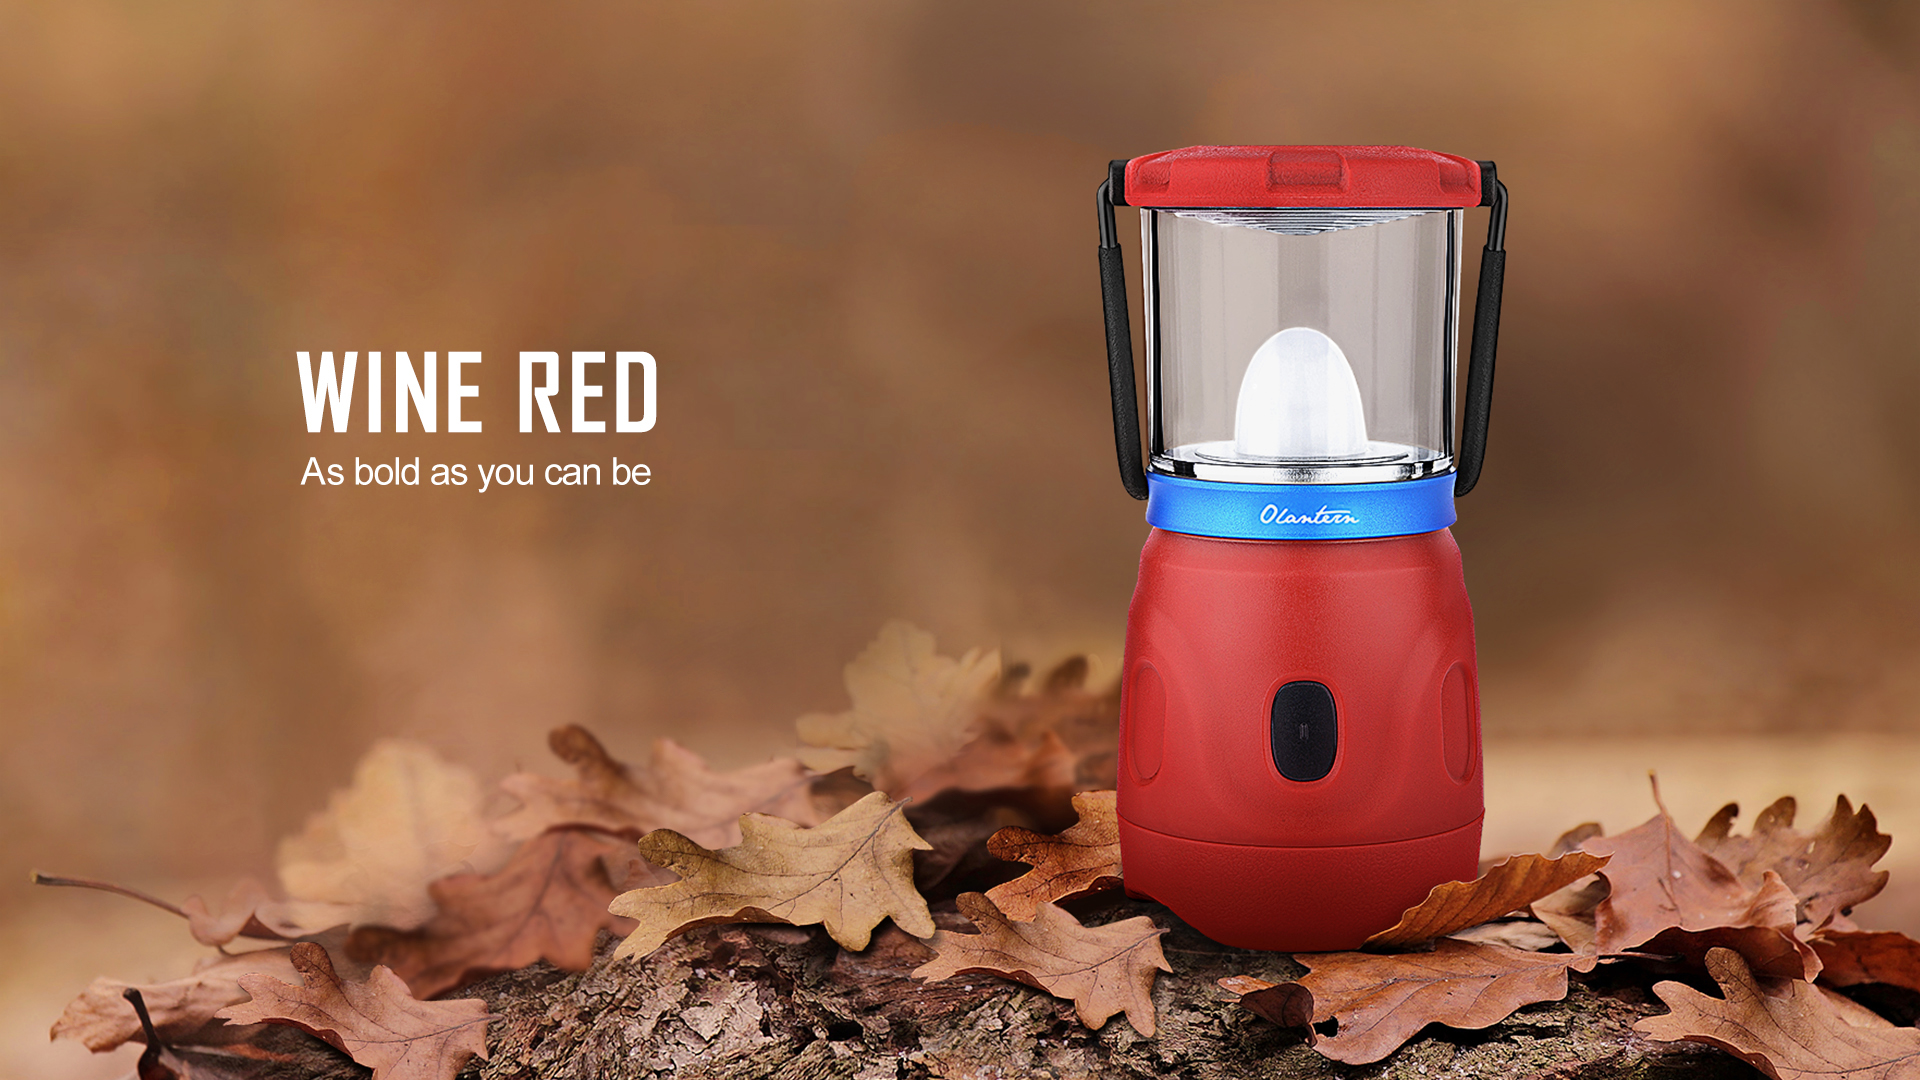 Olantern Rechargeable Camping Lights Wine Red